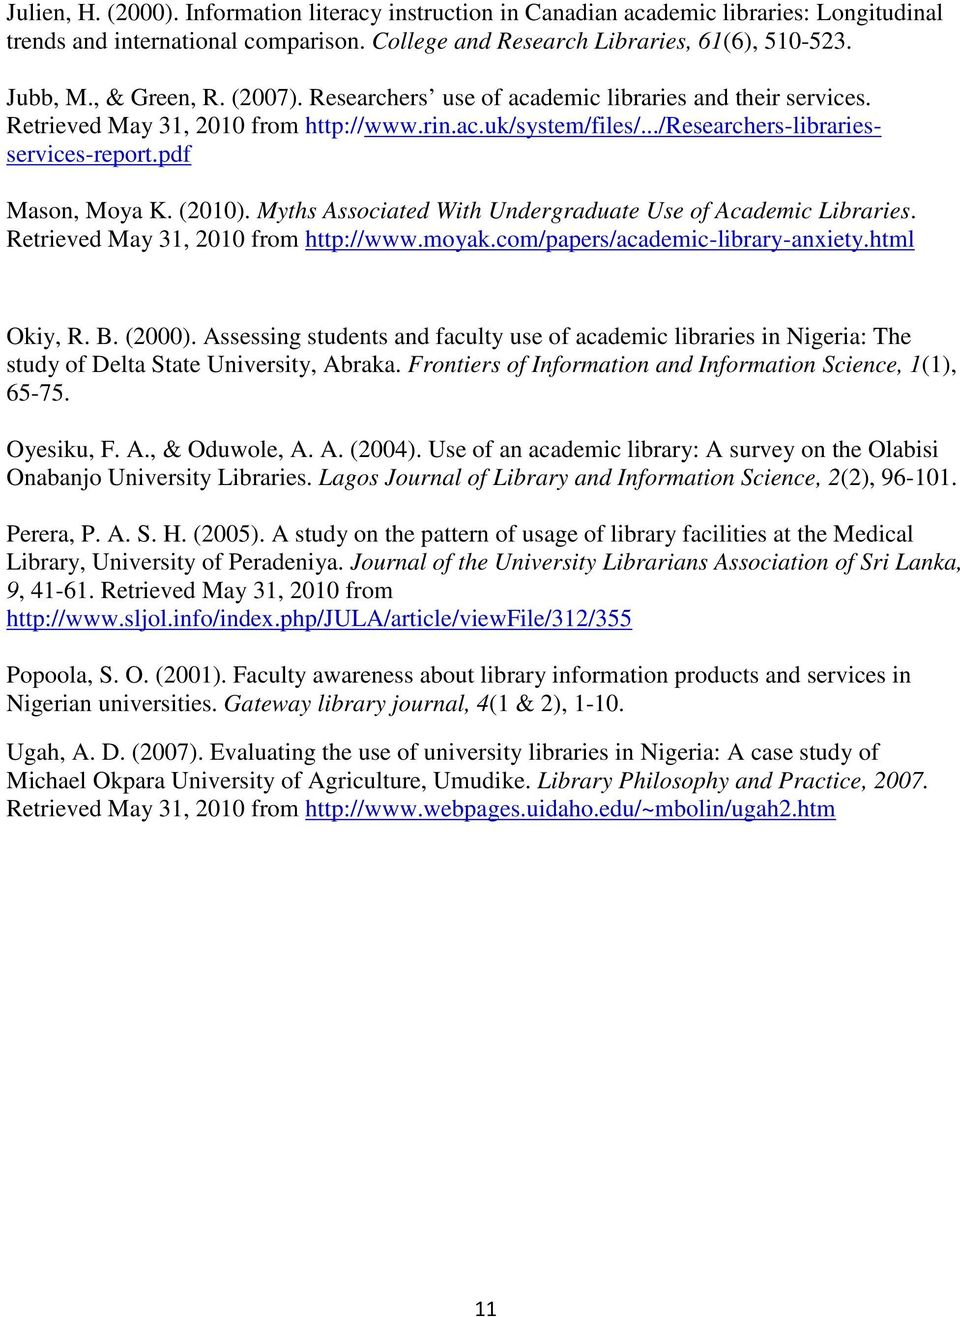 pdf Mason, Moya K. (2010). Myths Associated With Undergraduate Use of Academic Libraries. Retrieved May 31, 2010 from http://www.moyak.com/papers/academic-library-anxiety.html Okiy, R. B. (2000).